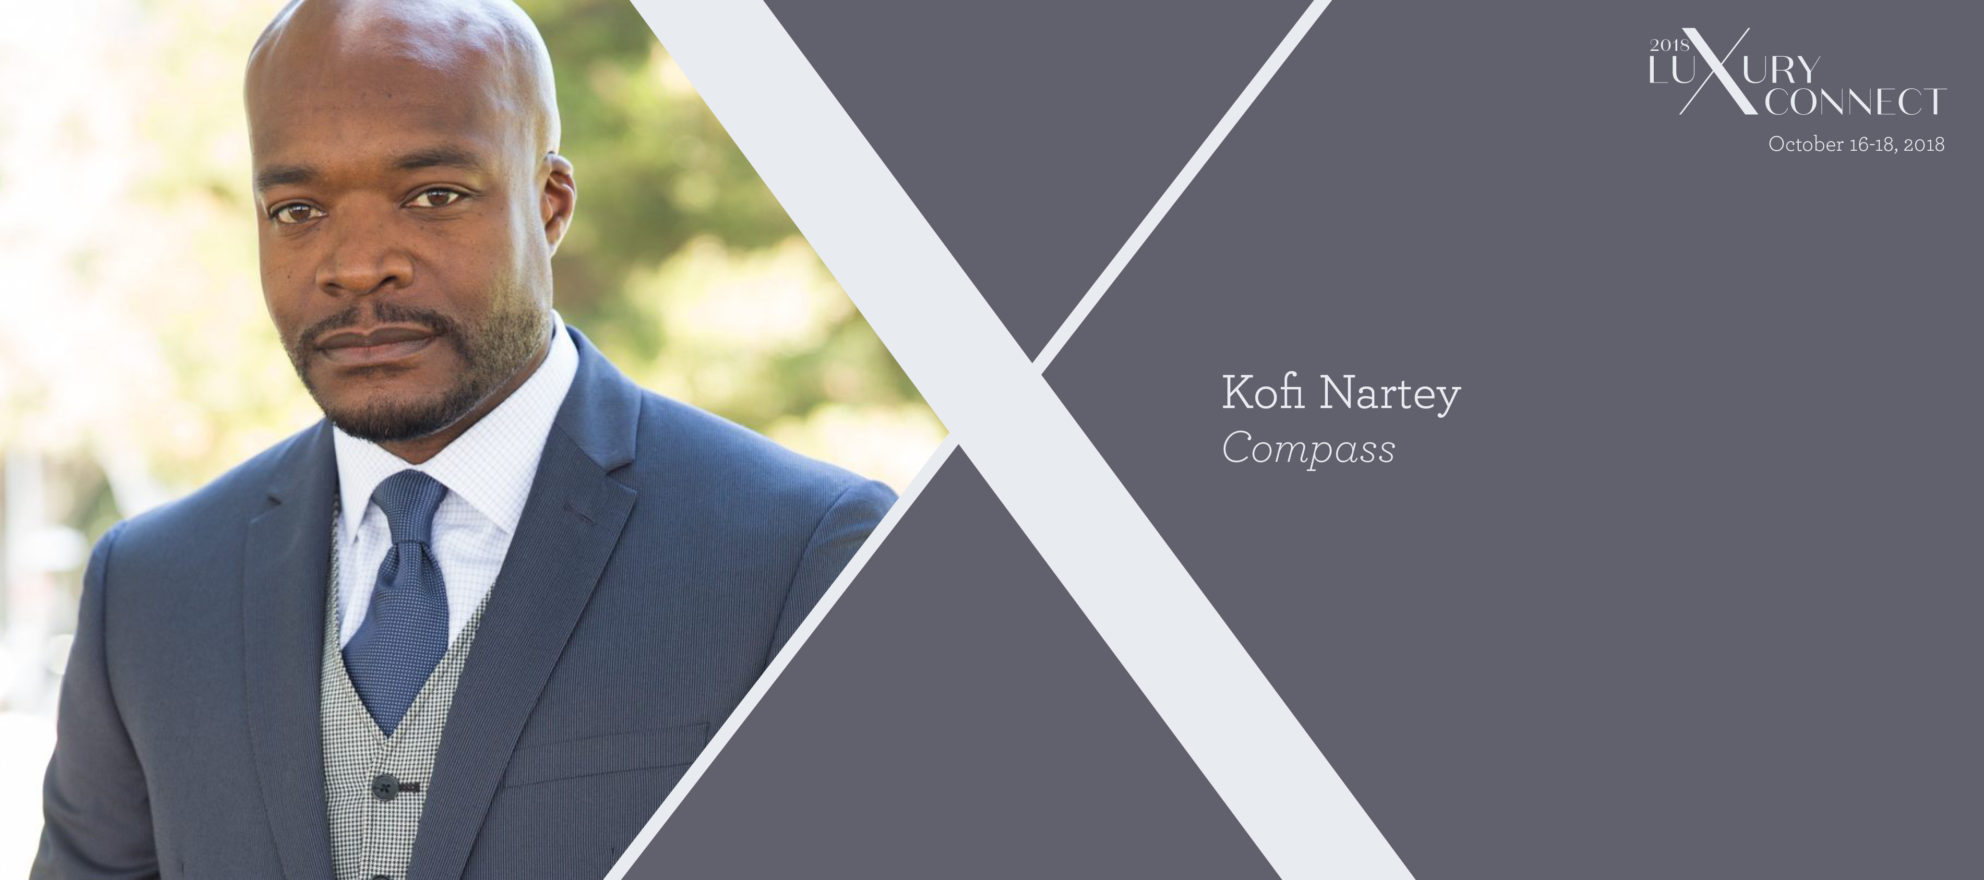 Luxury Connect: Kofi Nartey on how to build a wealth advisement team